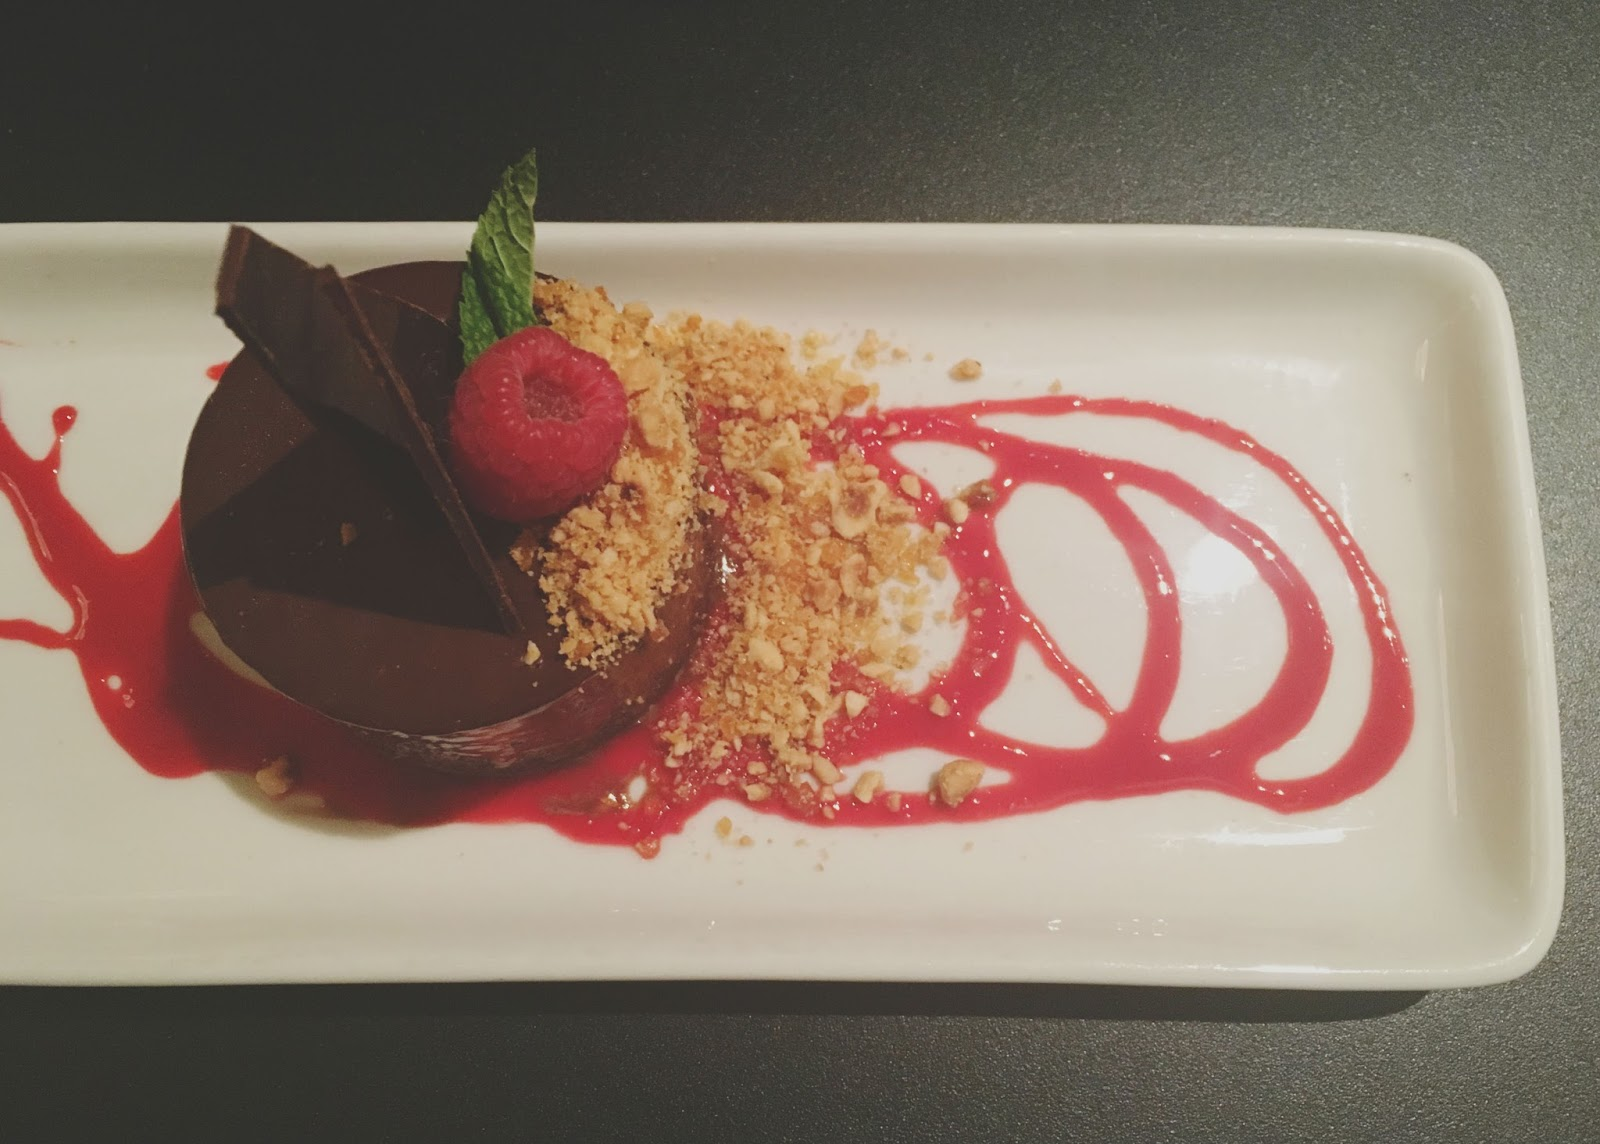 flourless chocolate mousse cake at Shade, a restaurant in Houston, Texas